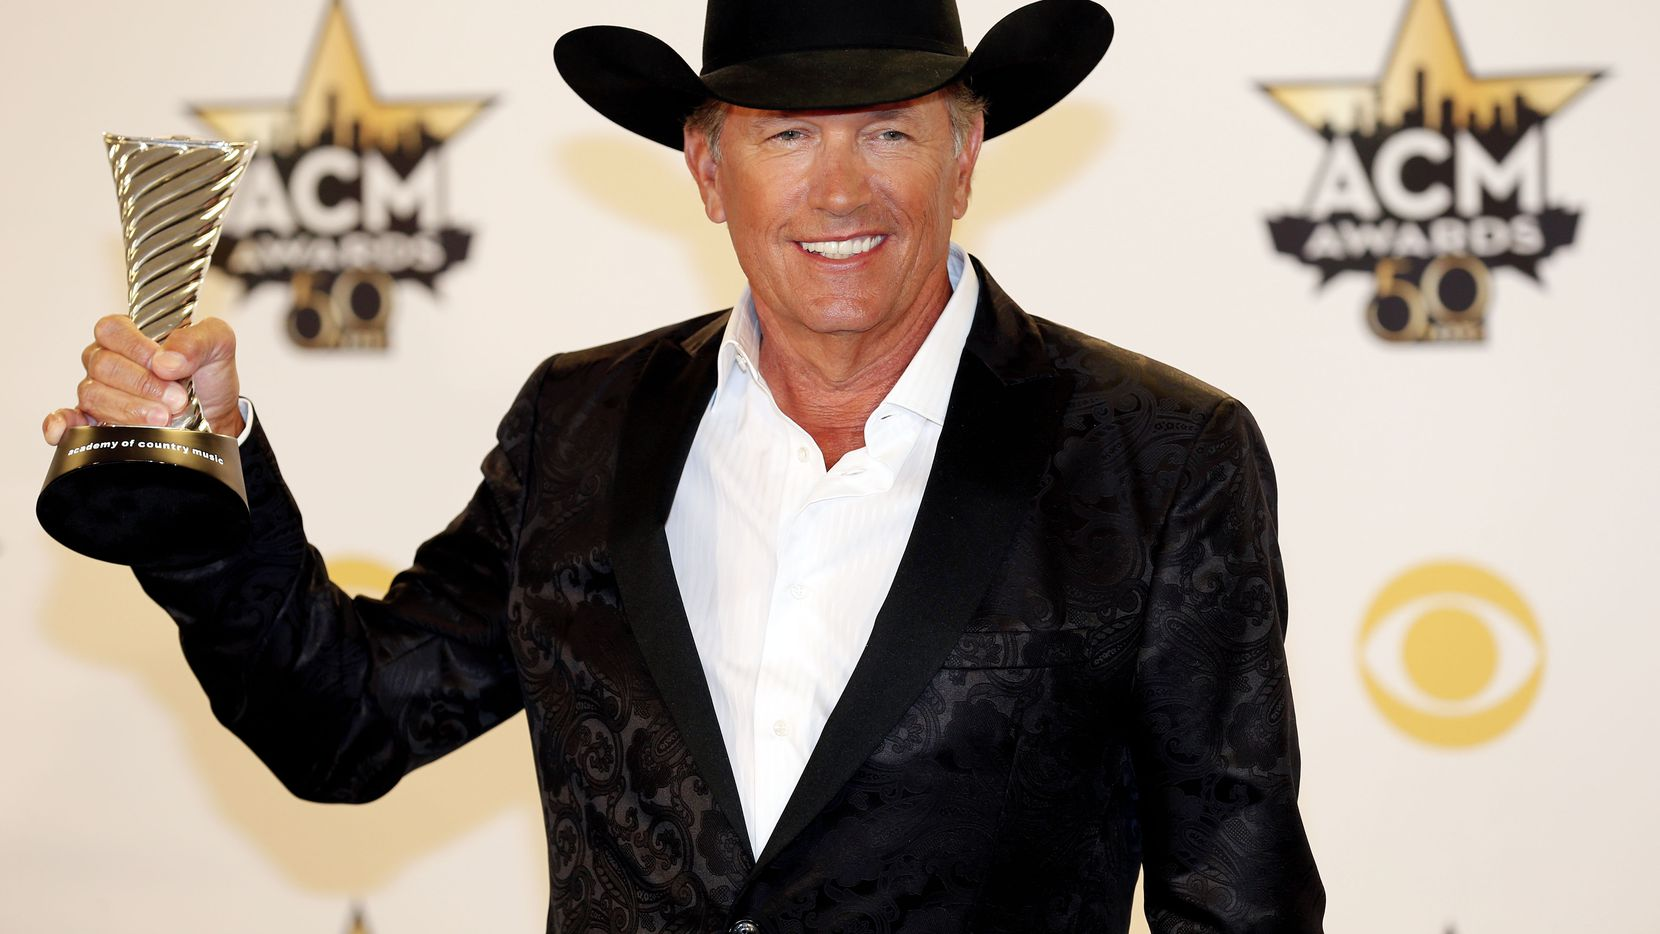 George Strait poses for a photo with his Milestone Award during the 2015 Academy of Country Music Awards Sunday, April 19, 2015 at AT&T Stadium in Arlington, Texas.